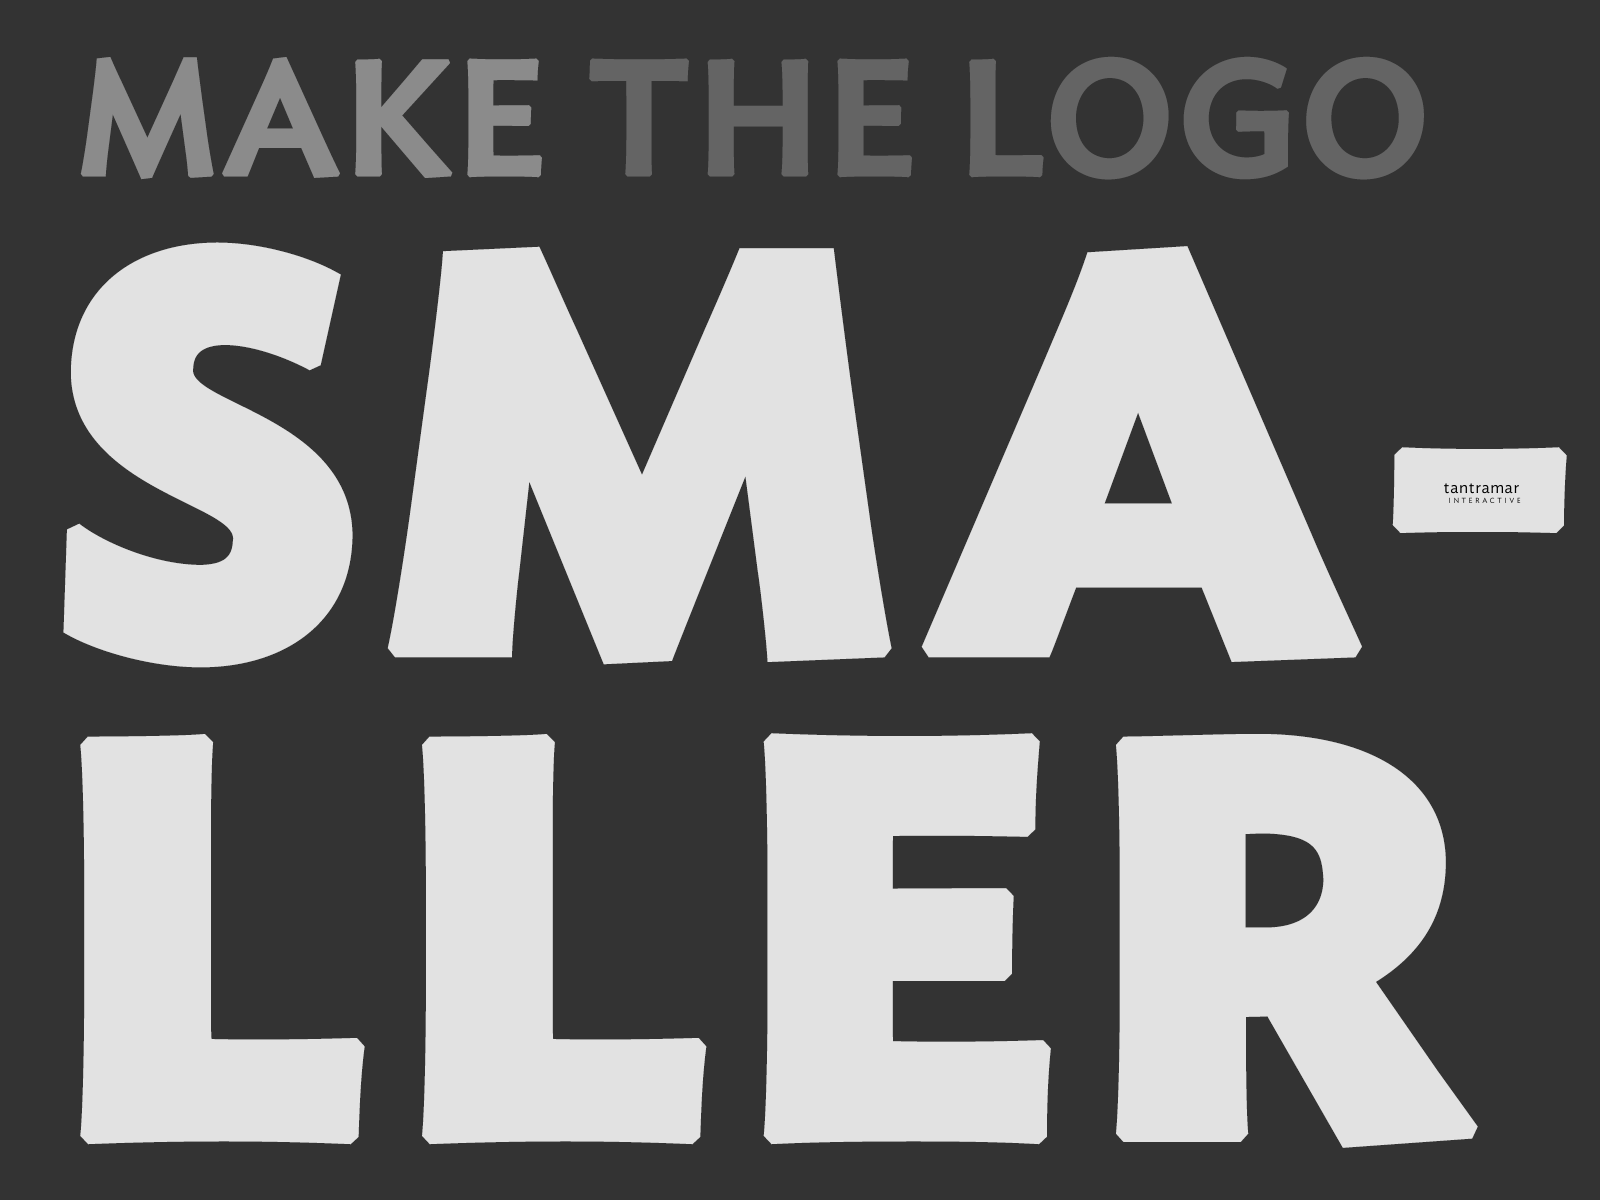 MAKE THE LOGO SMALLER [Tantramar Interactive Inc.]